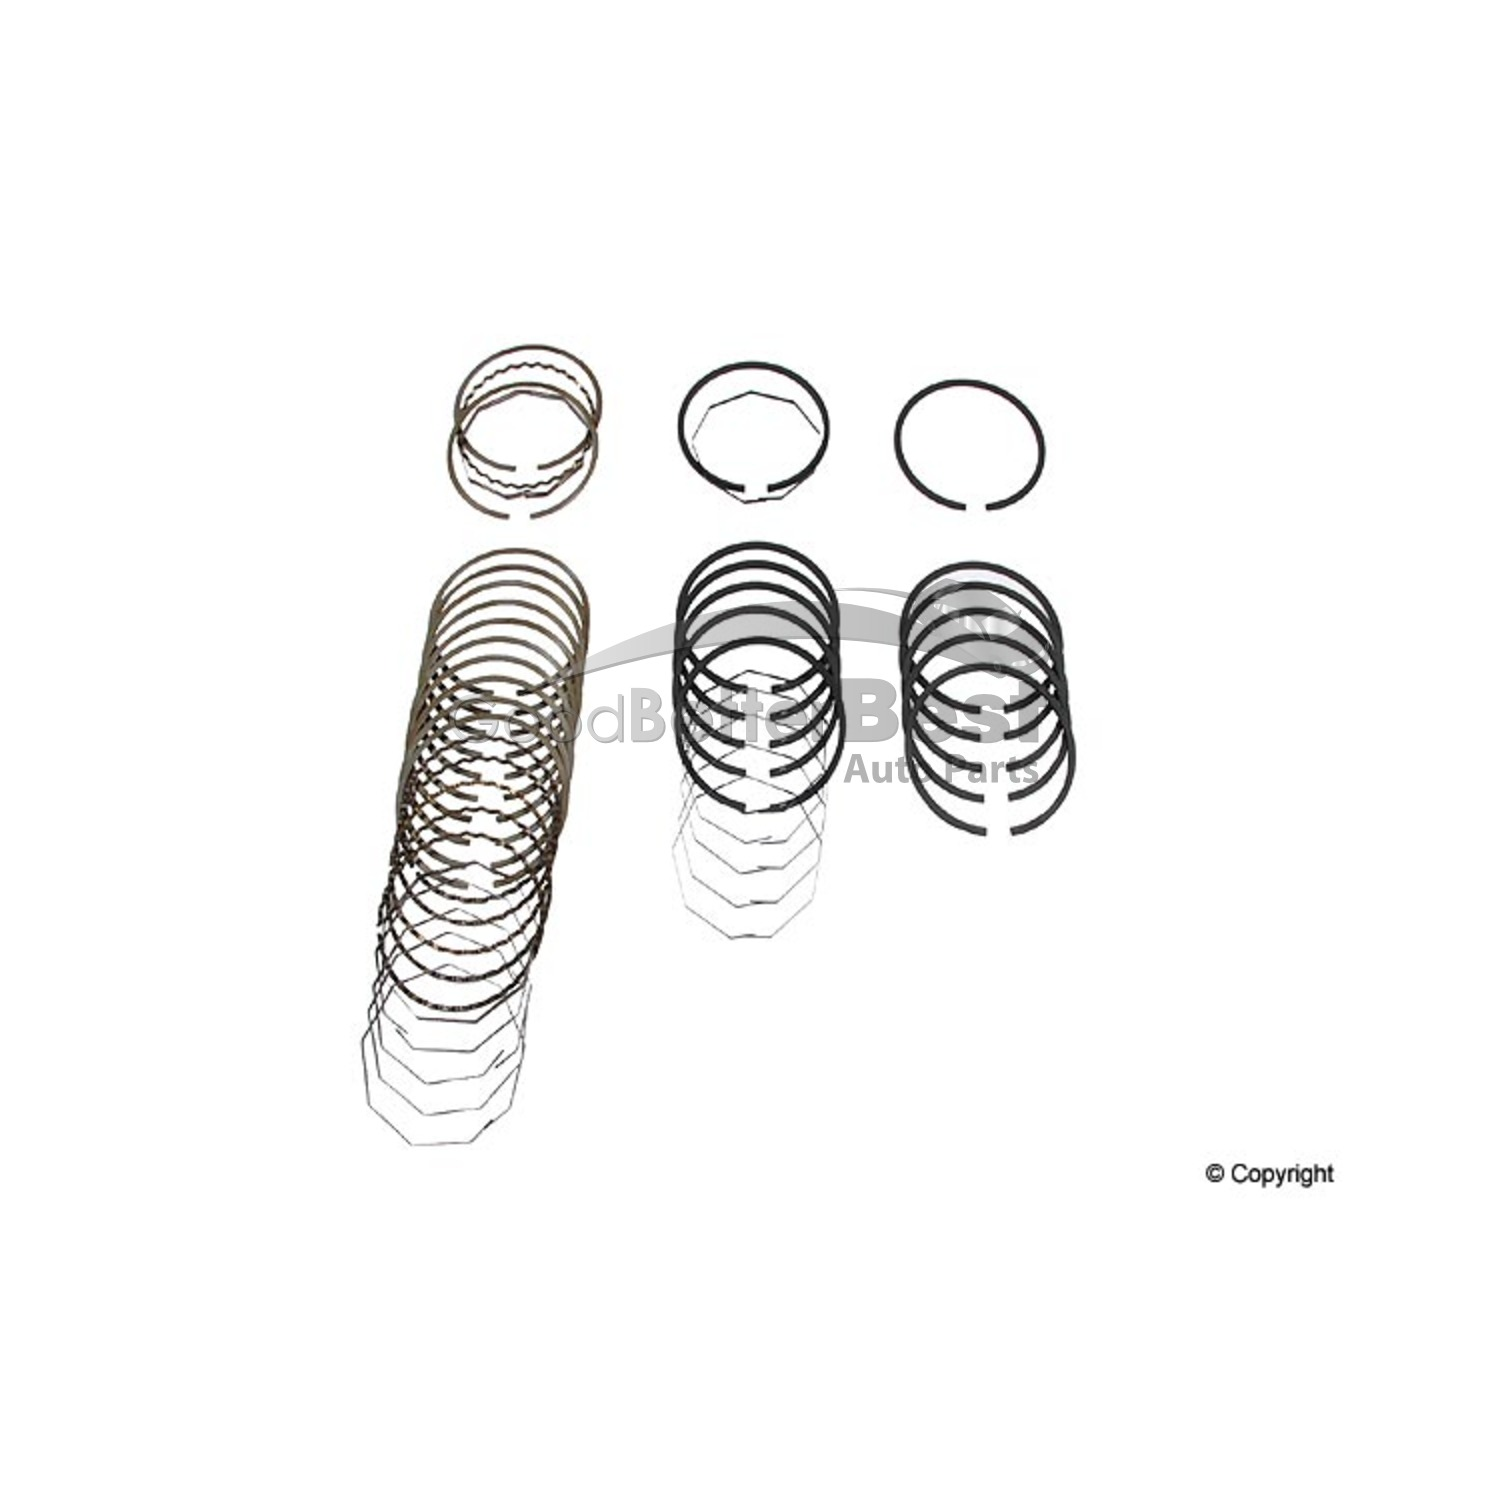 New Deves Engine Piston Ring Set For Mercedes Mb